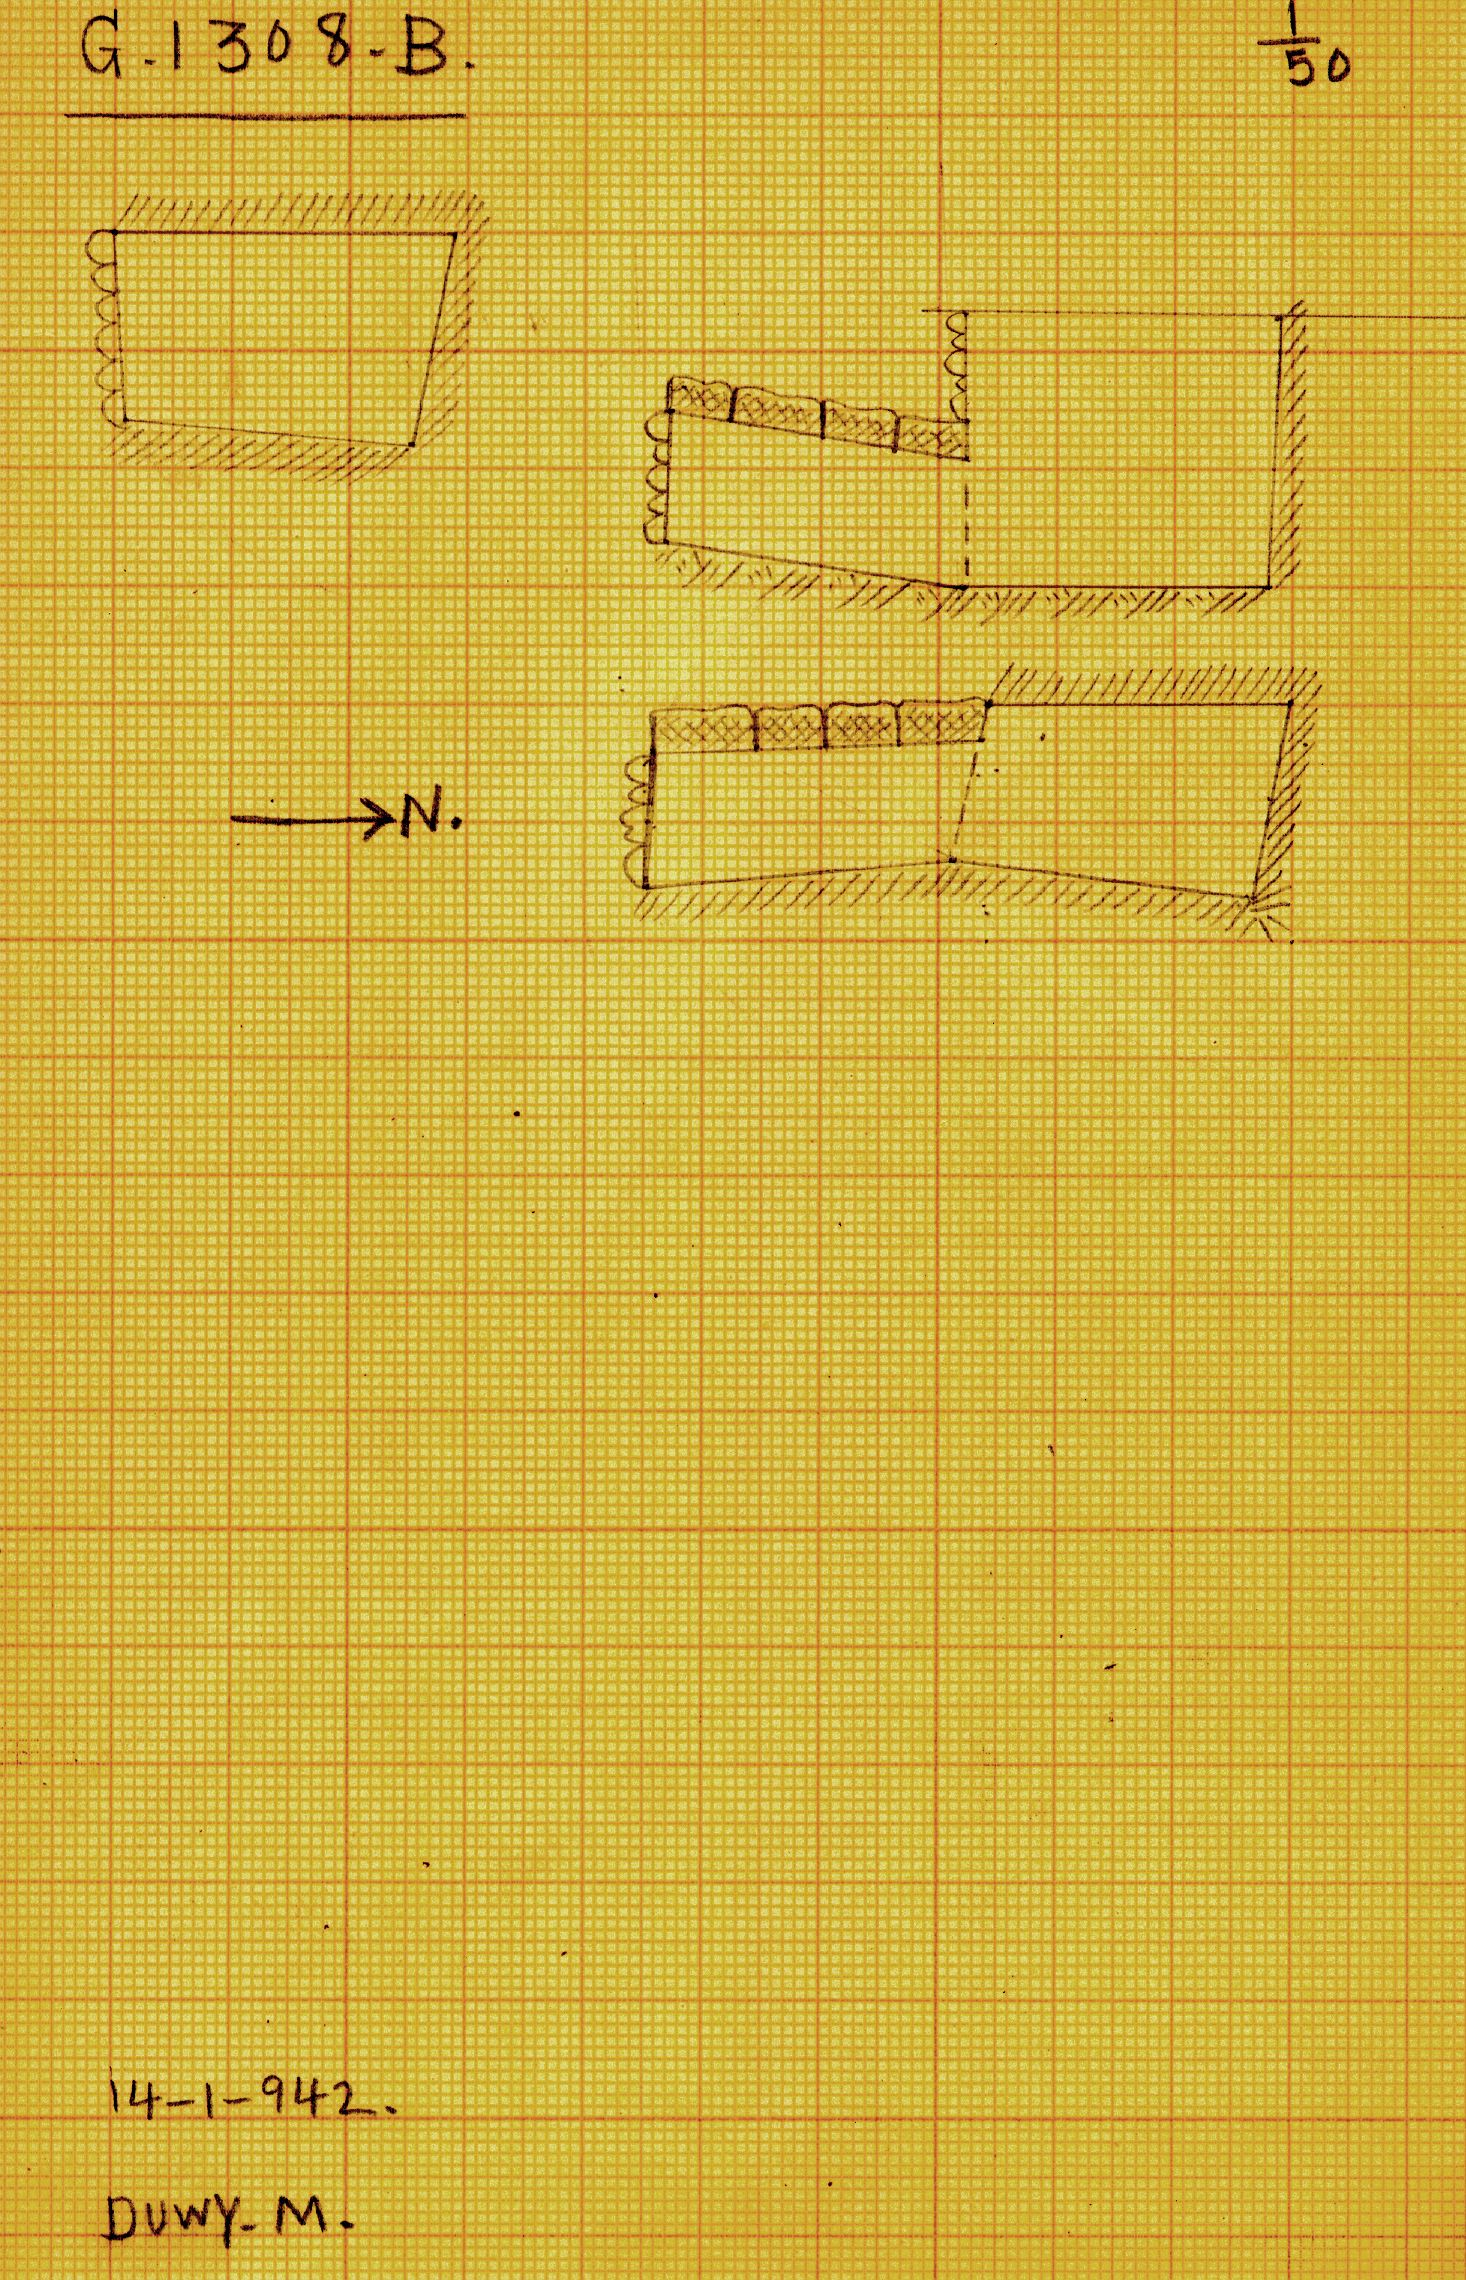 Maps and plans: G 1308, Shaft B